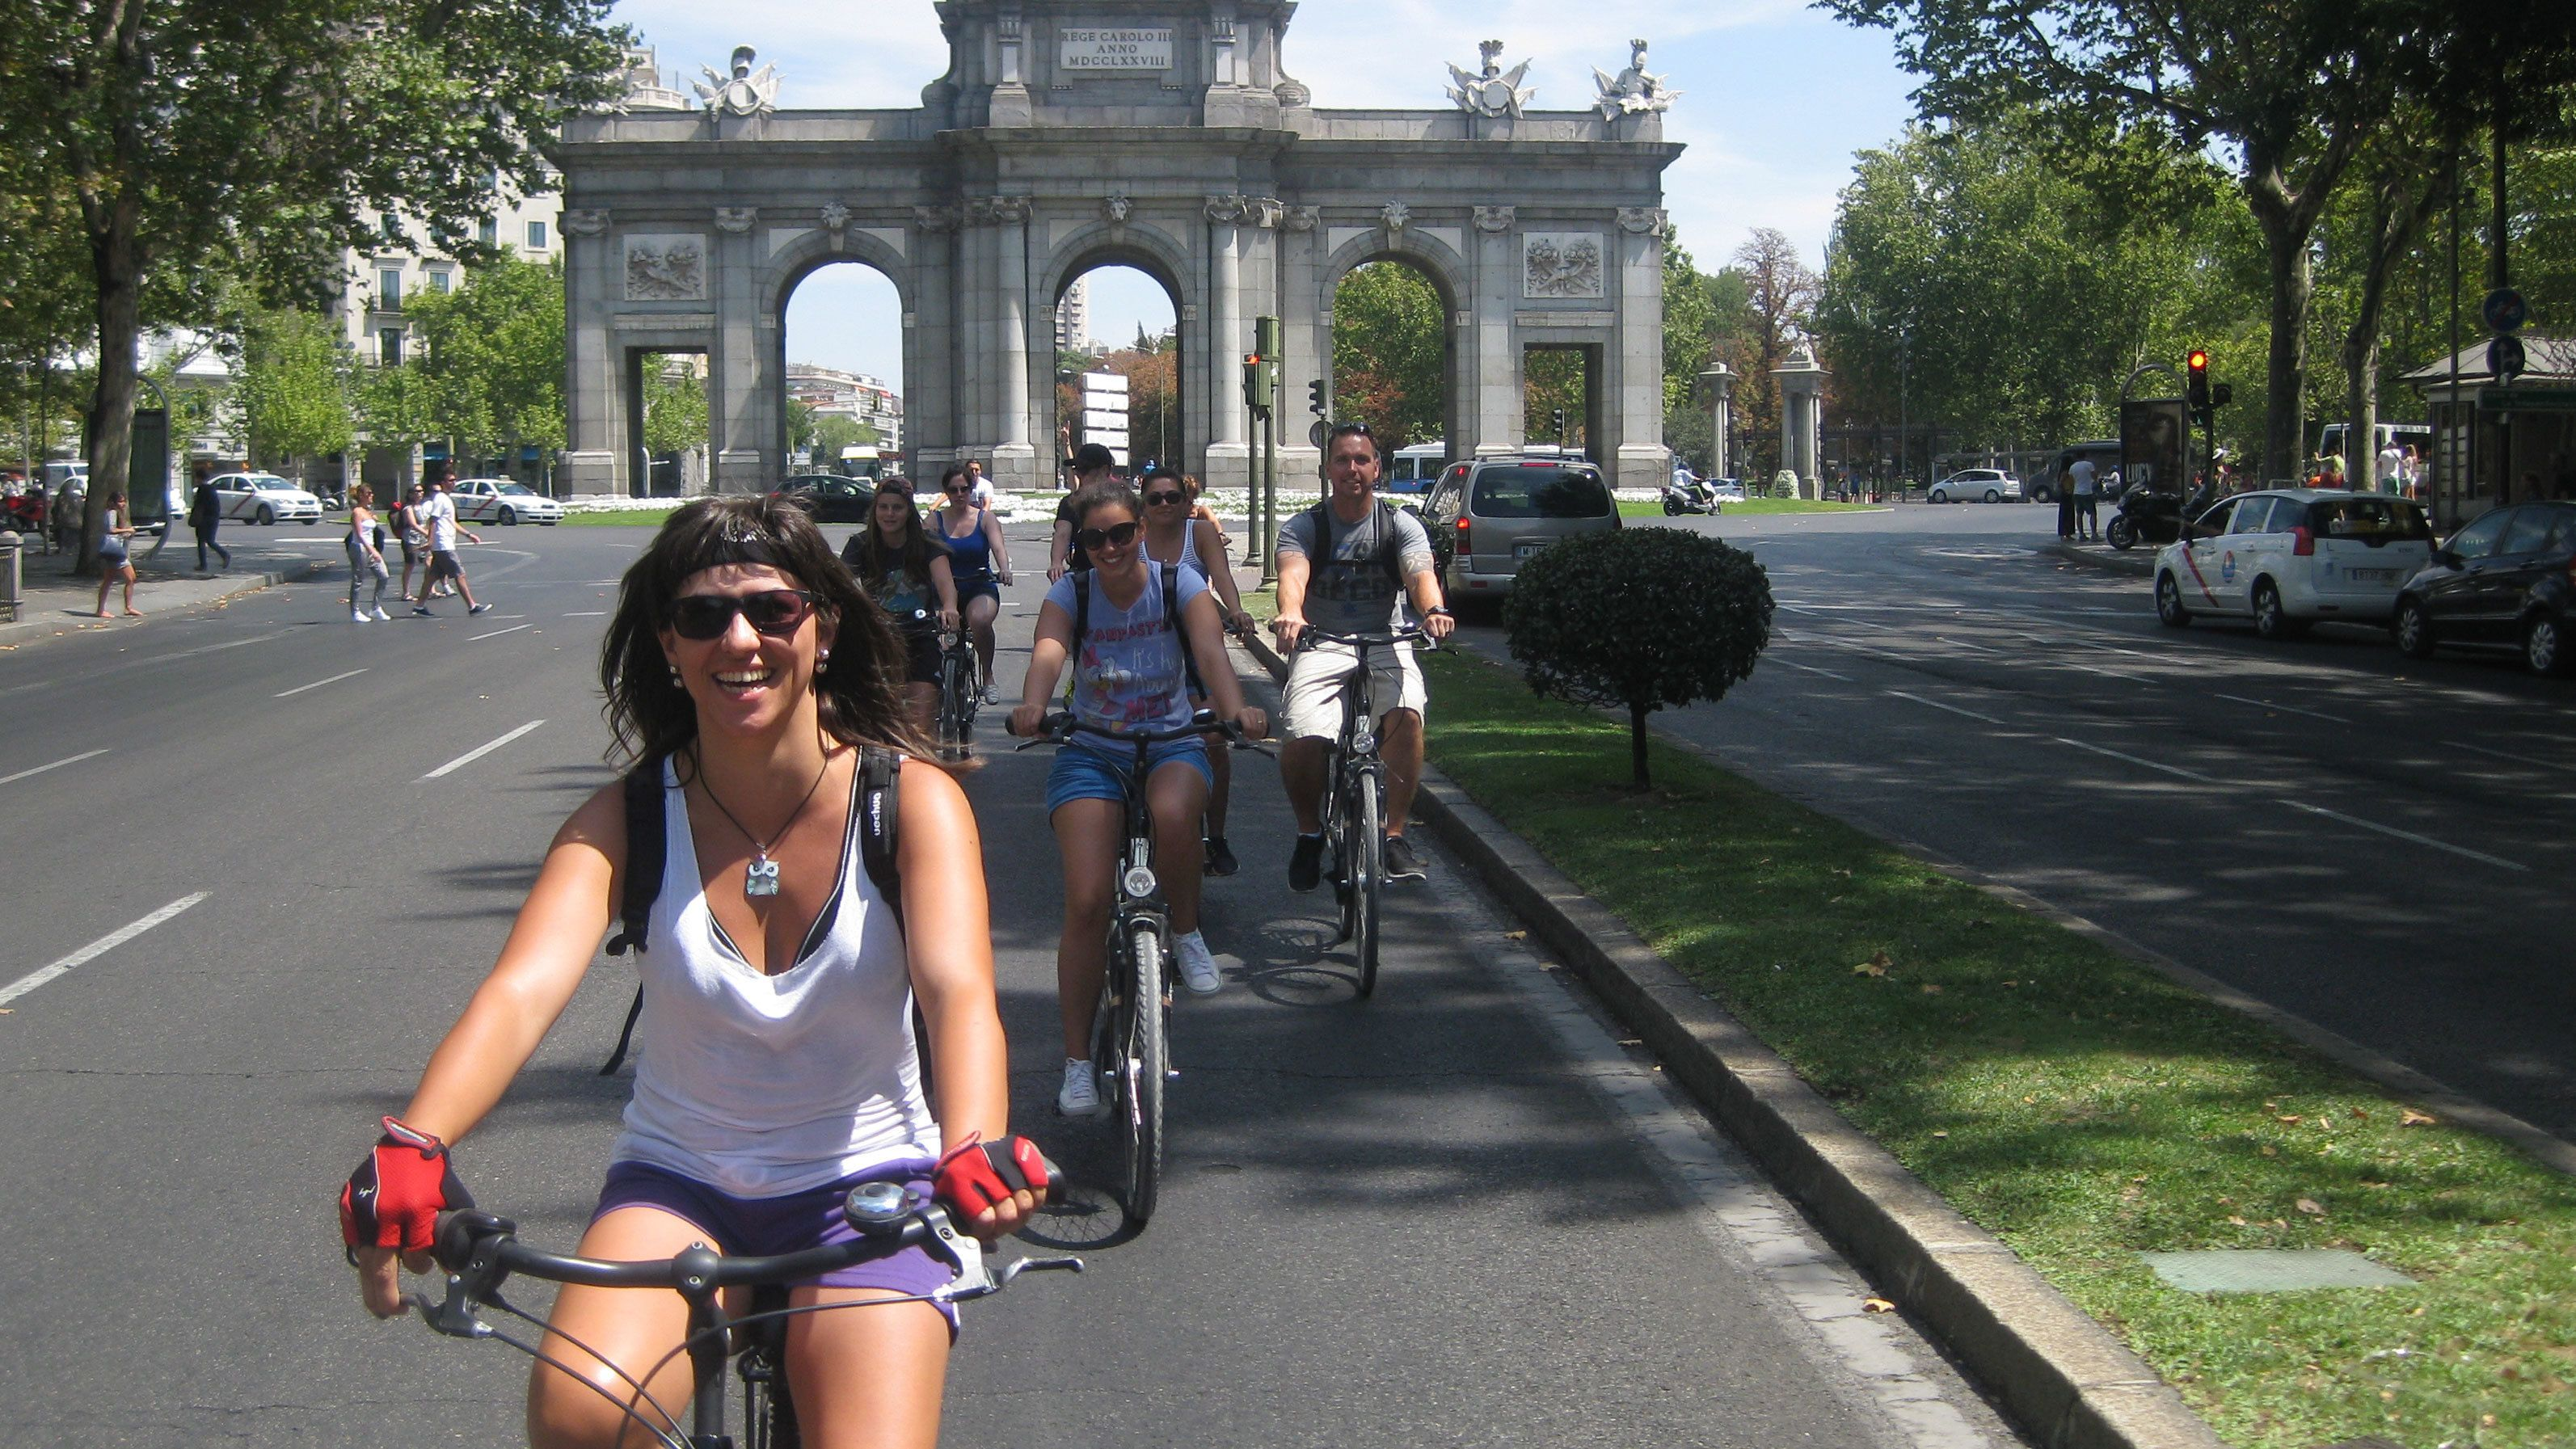 A group of bicyclists riding through Puerta de Alcalá in Madrid